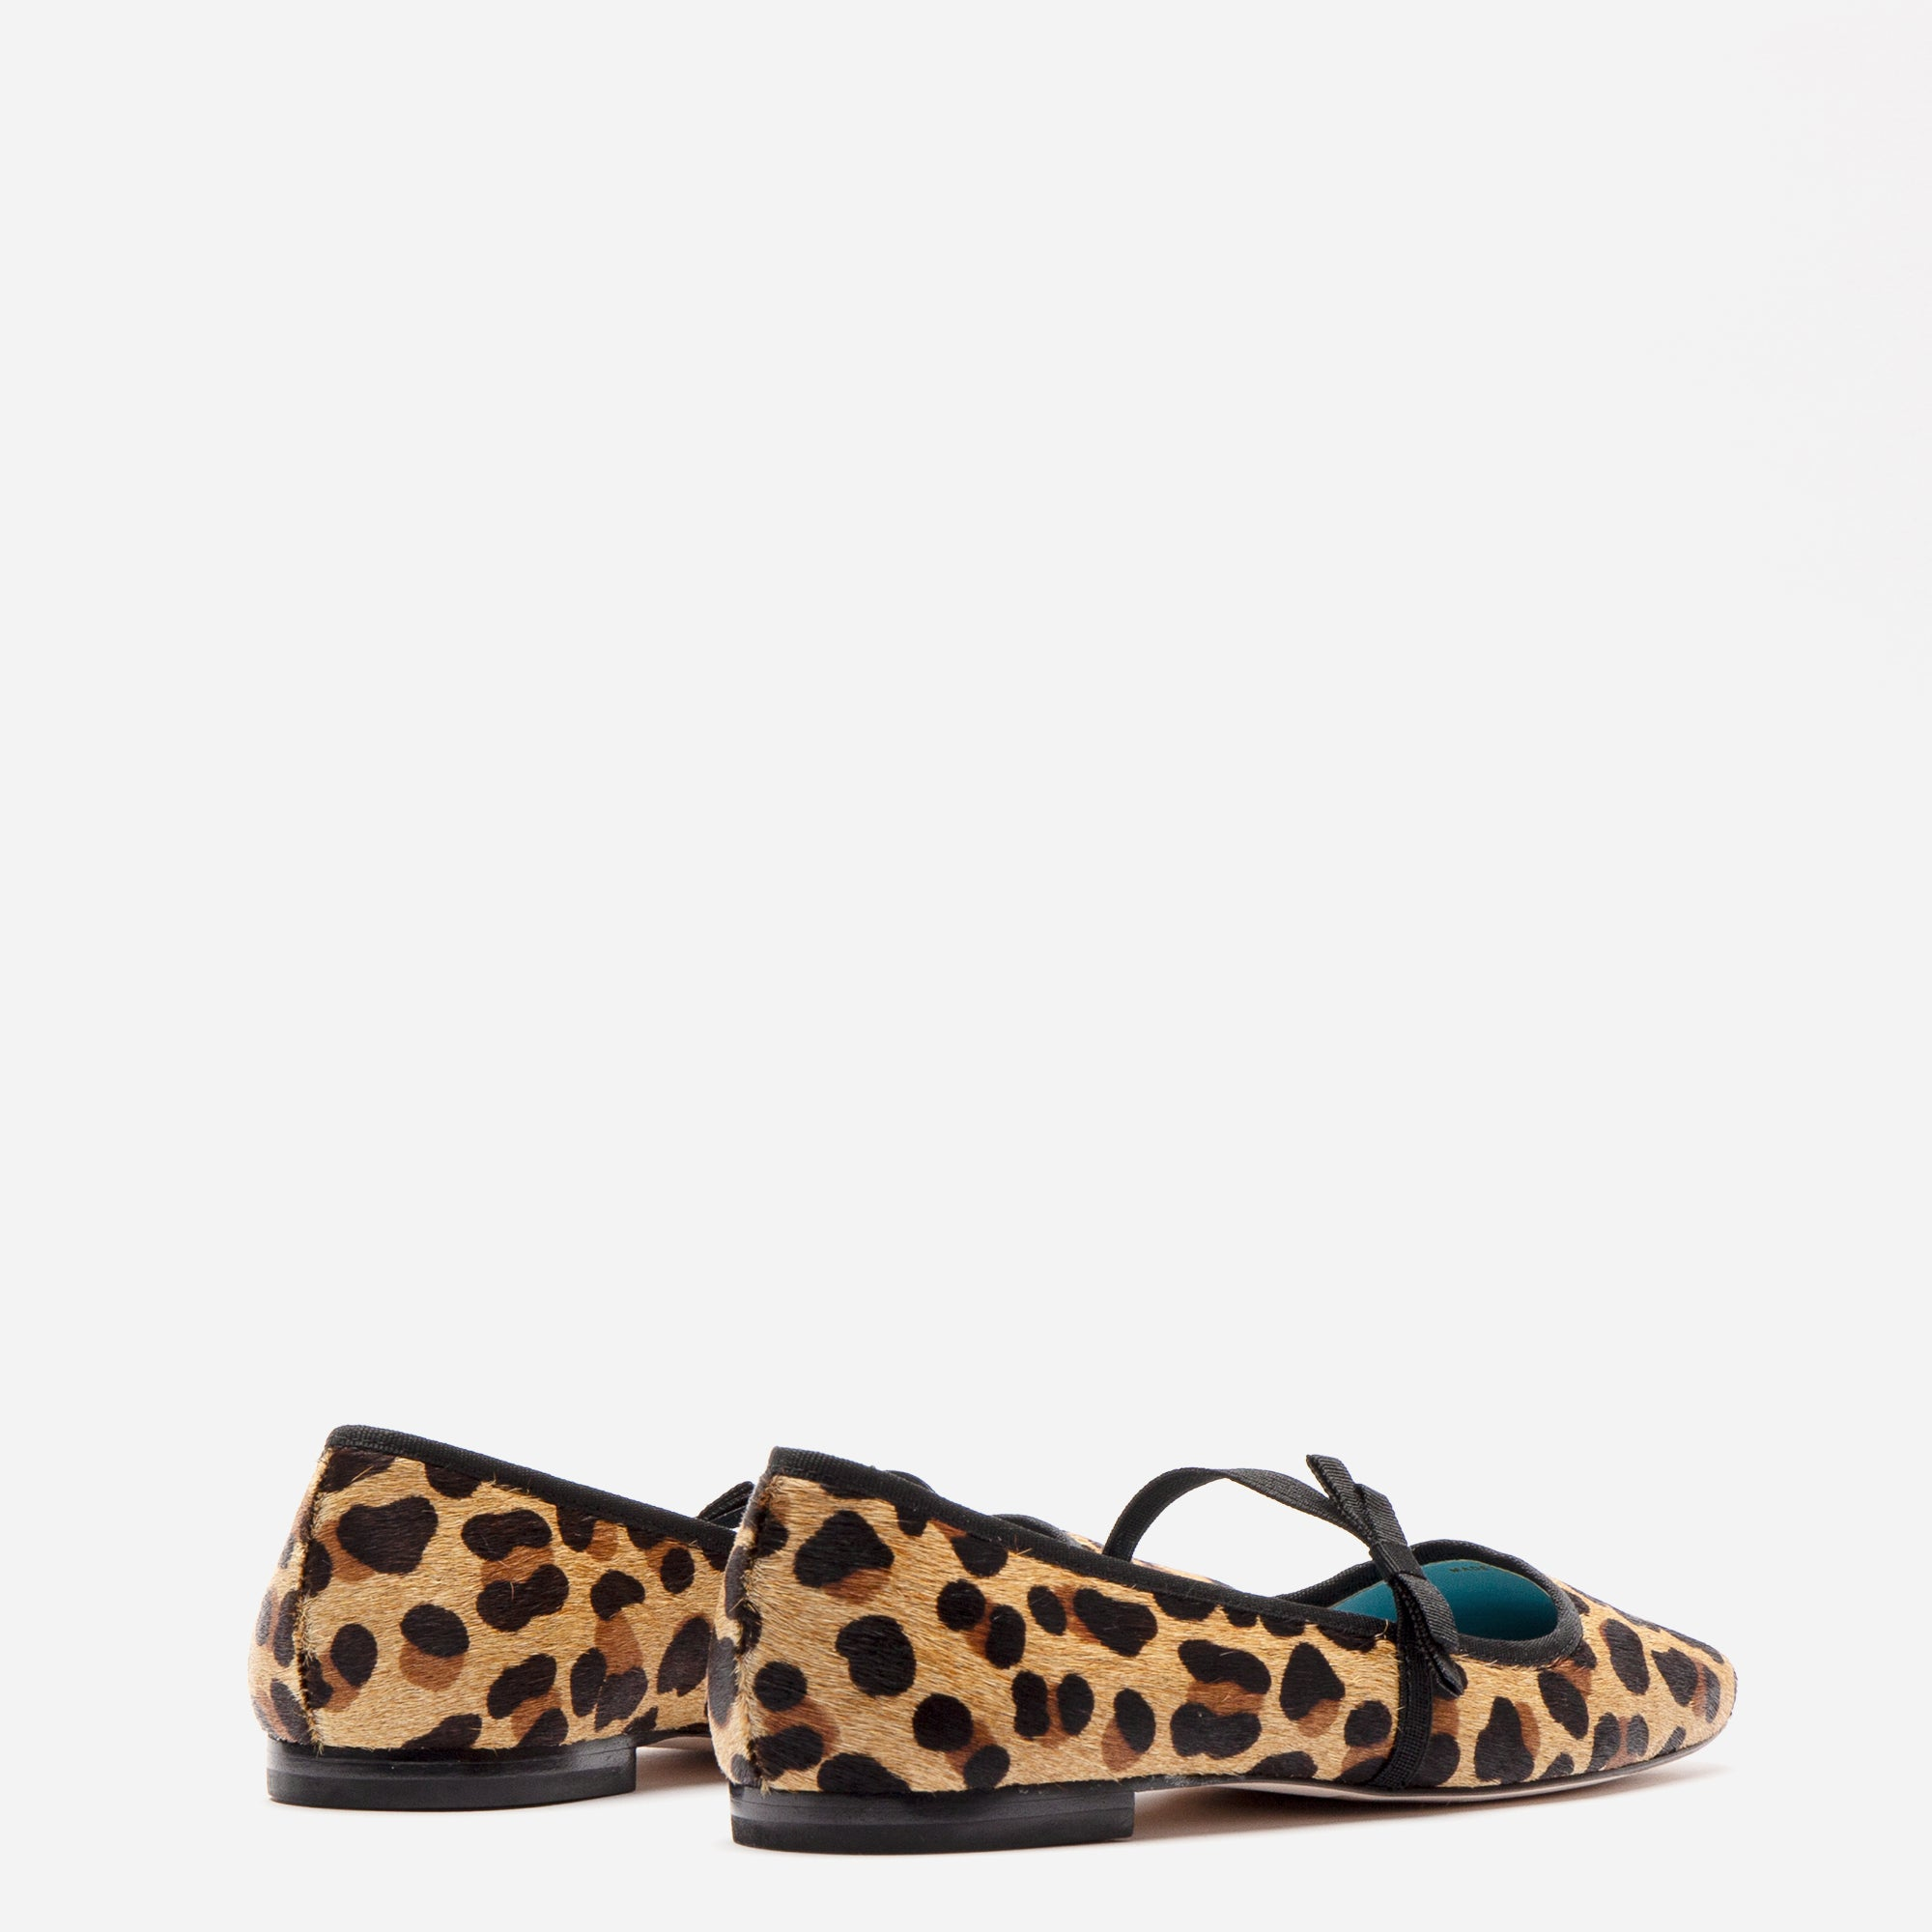 Jude Mary Jane Flats Leopard Printed Haircalf